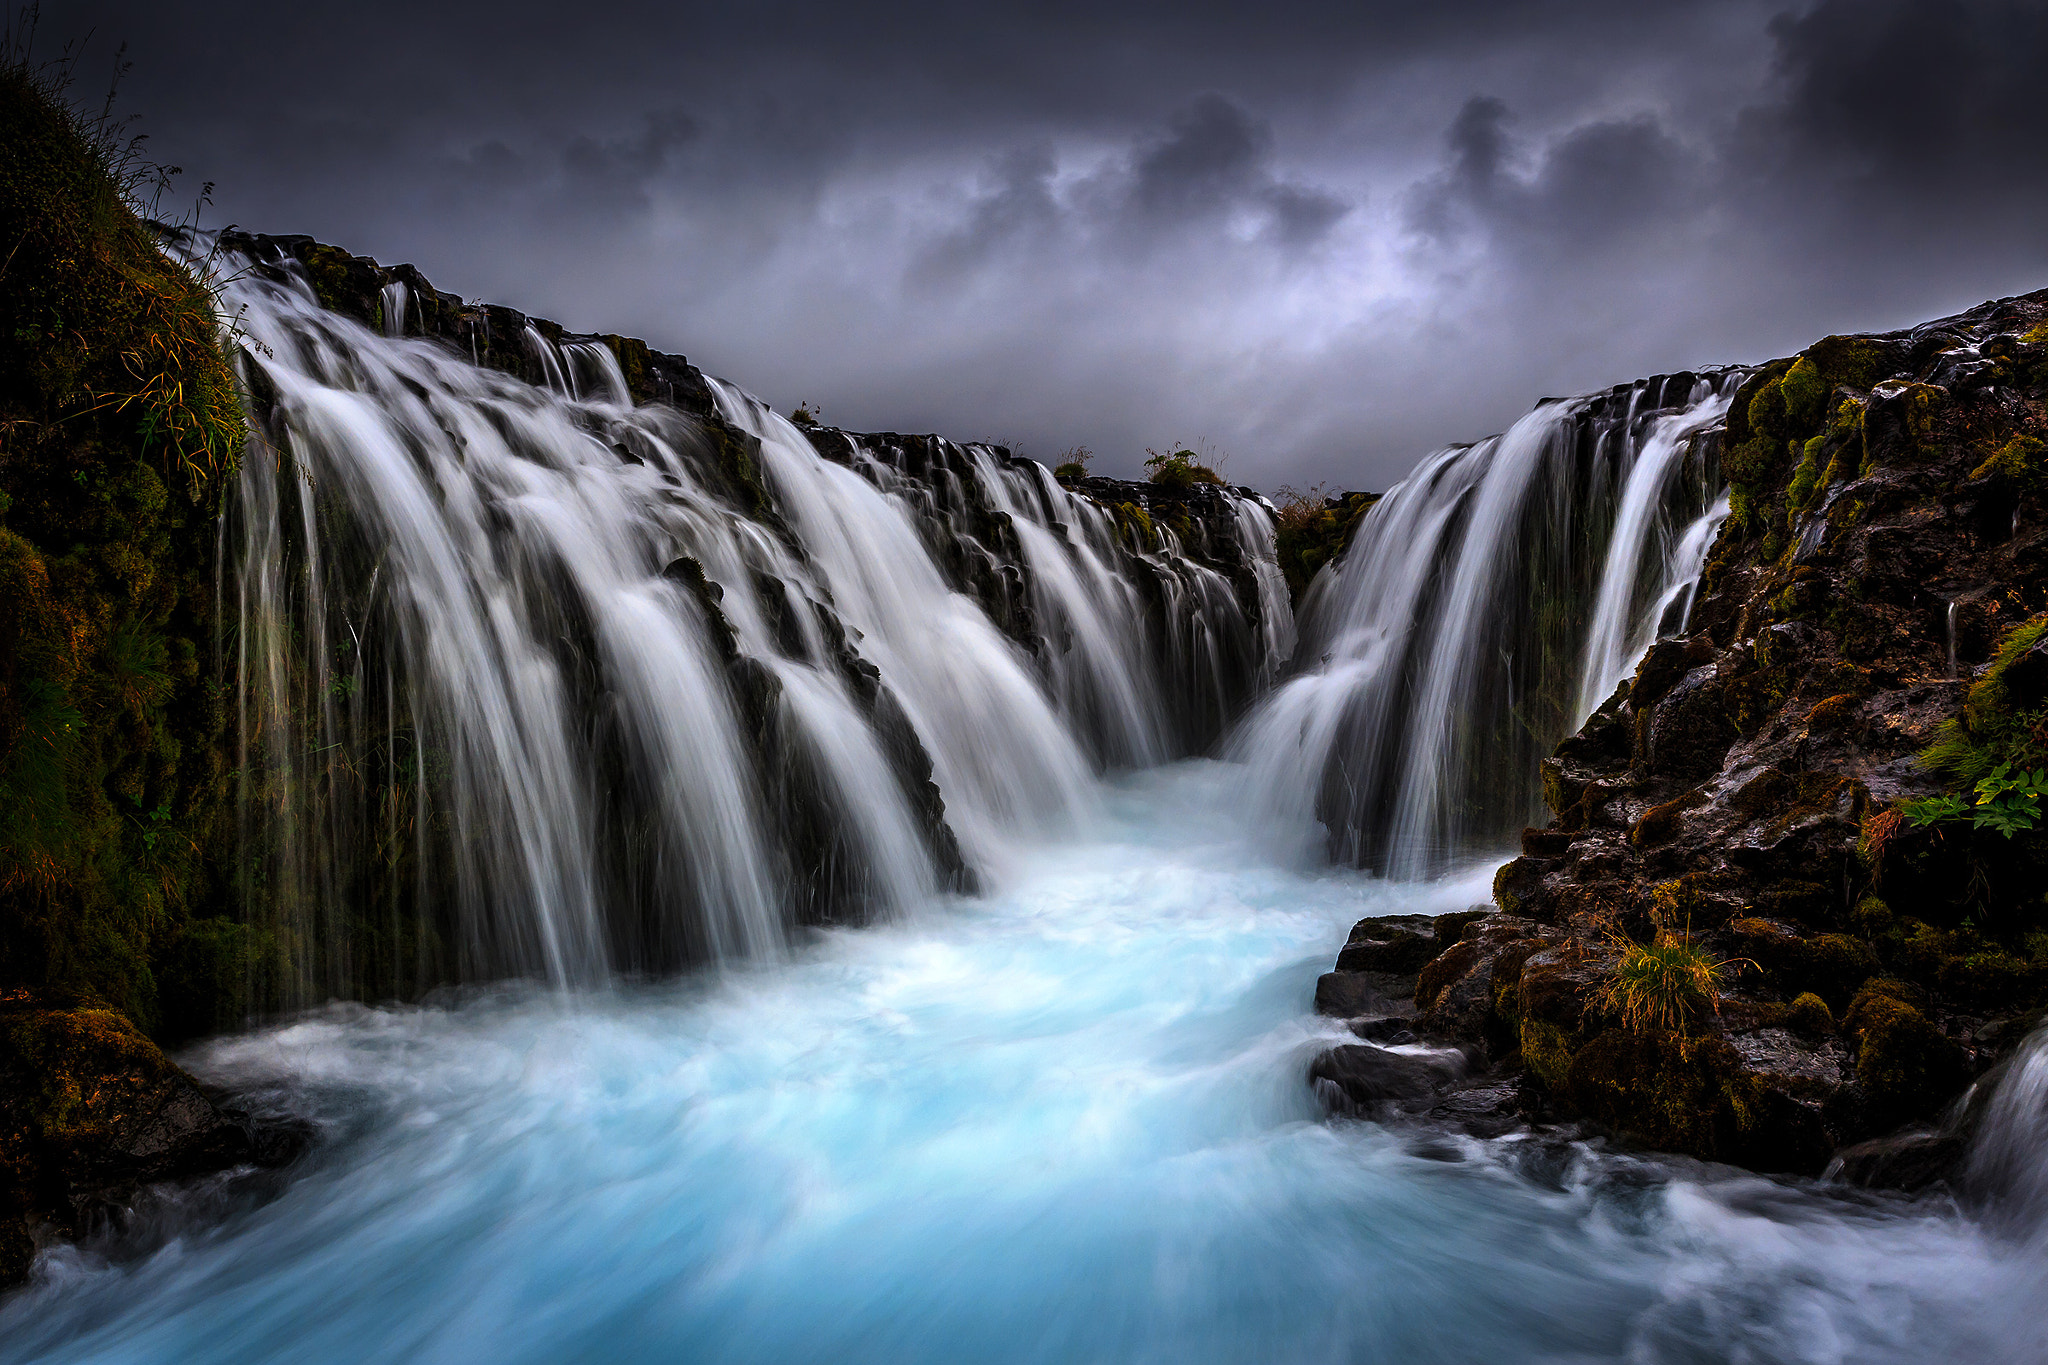 Photograph Blue water by Sus Bogaerts on 500px